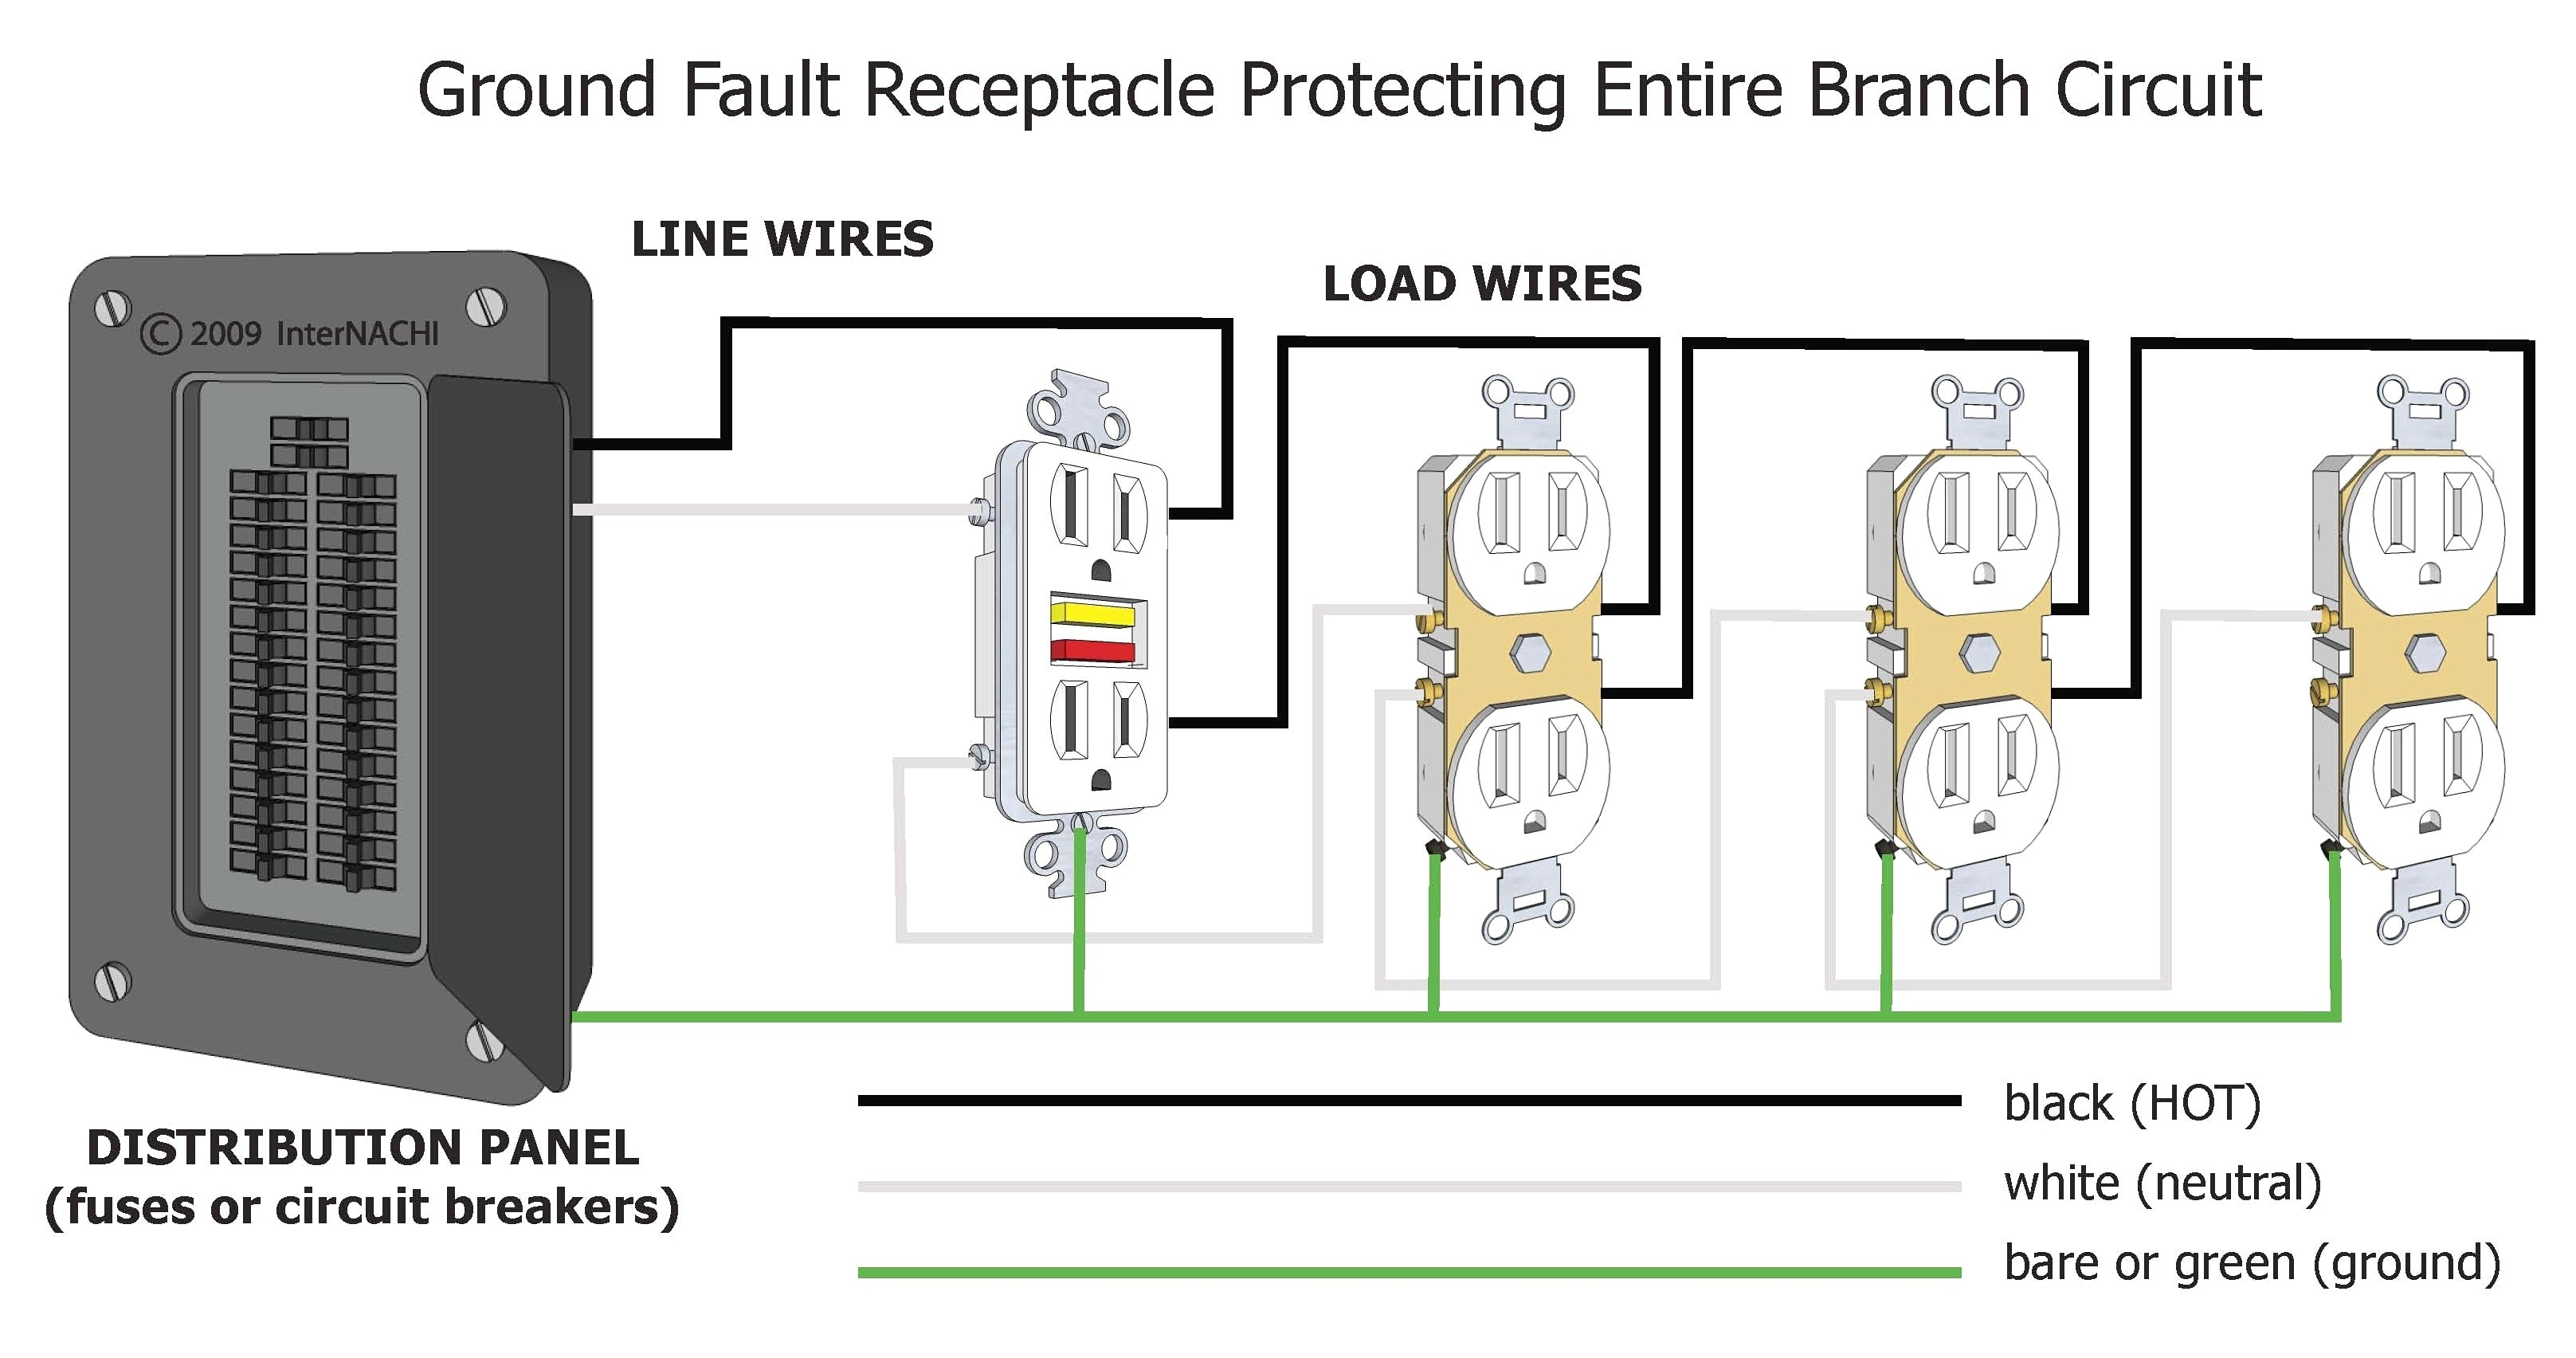 Computer Wiring Diagram Pool About For Rv Distribution Panel Sample Logic